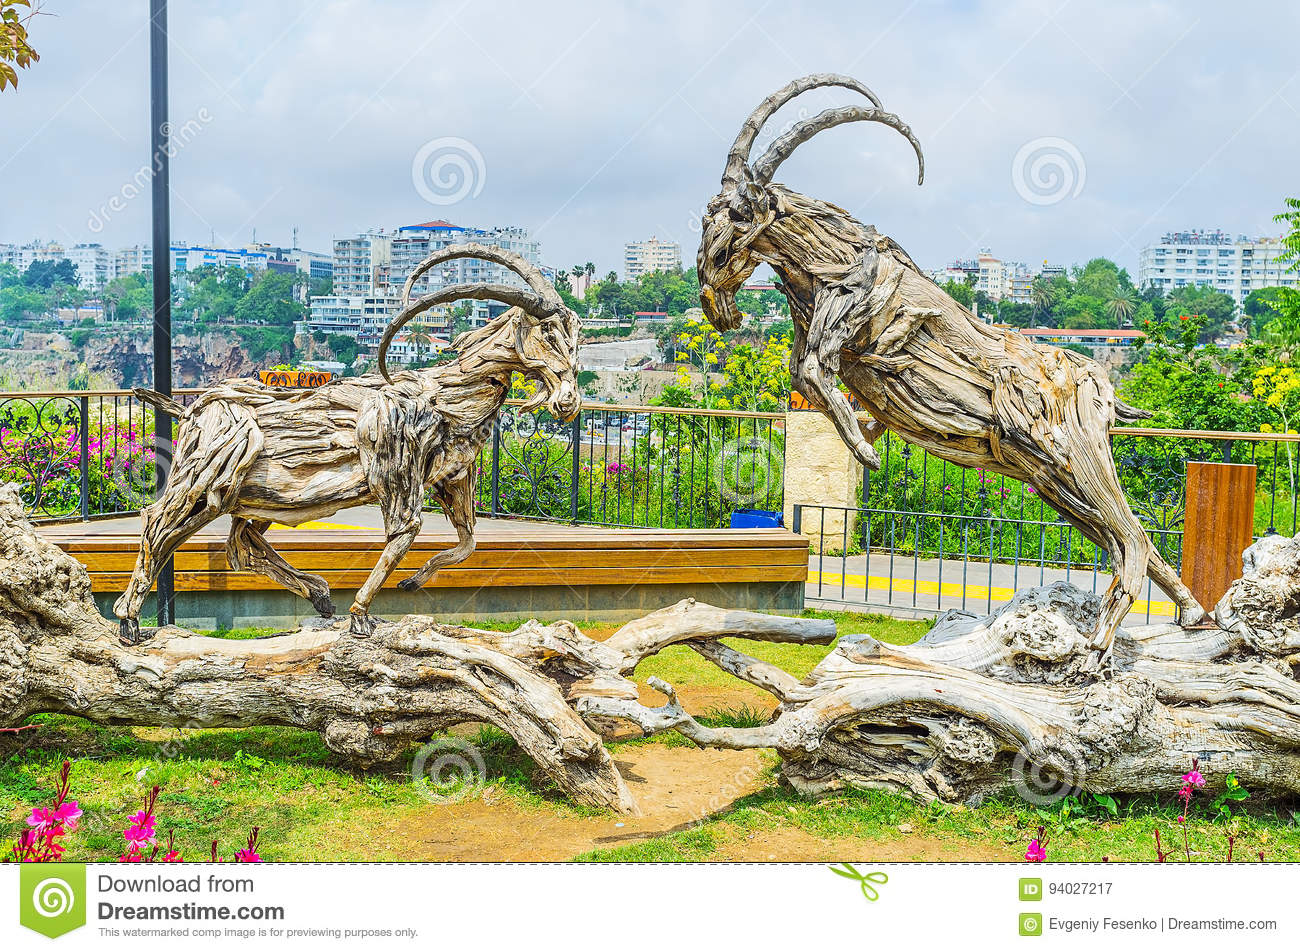 The fight of wooden ibexes